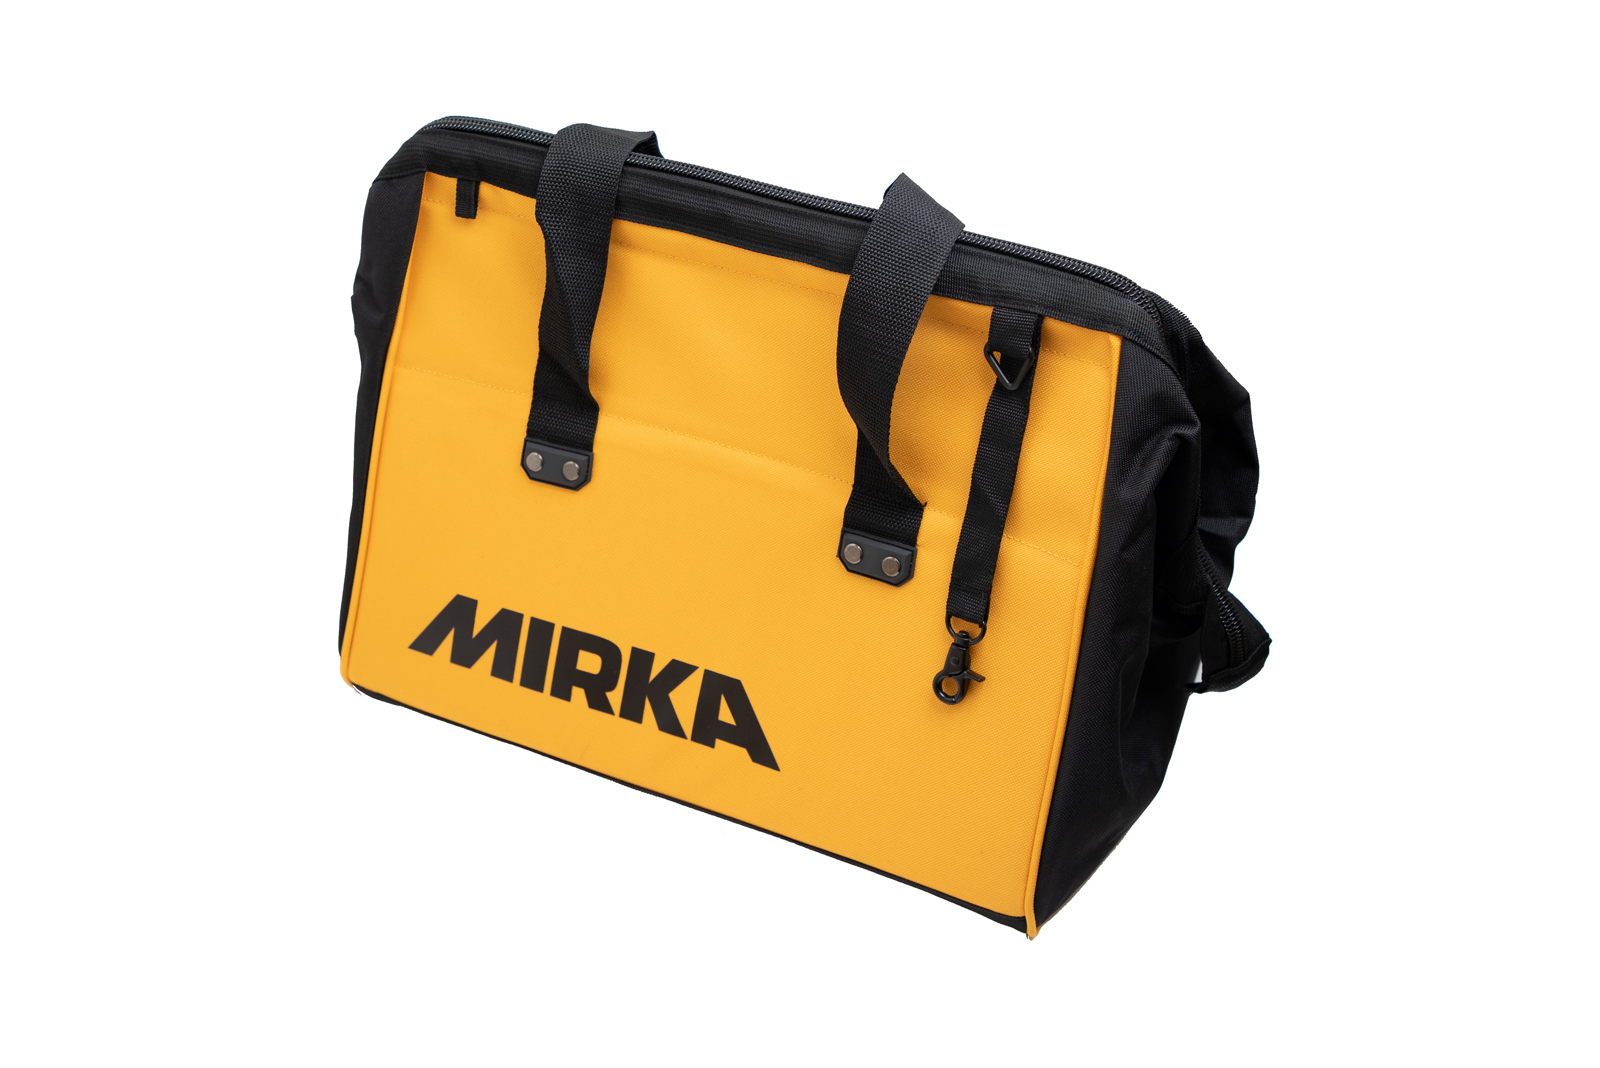 5 Mirka fabric tool bags to win